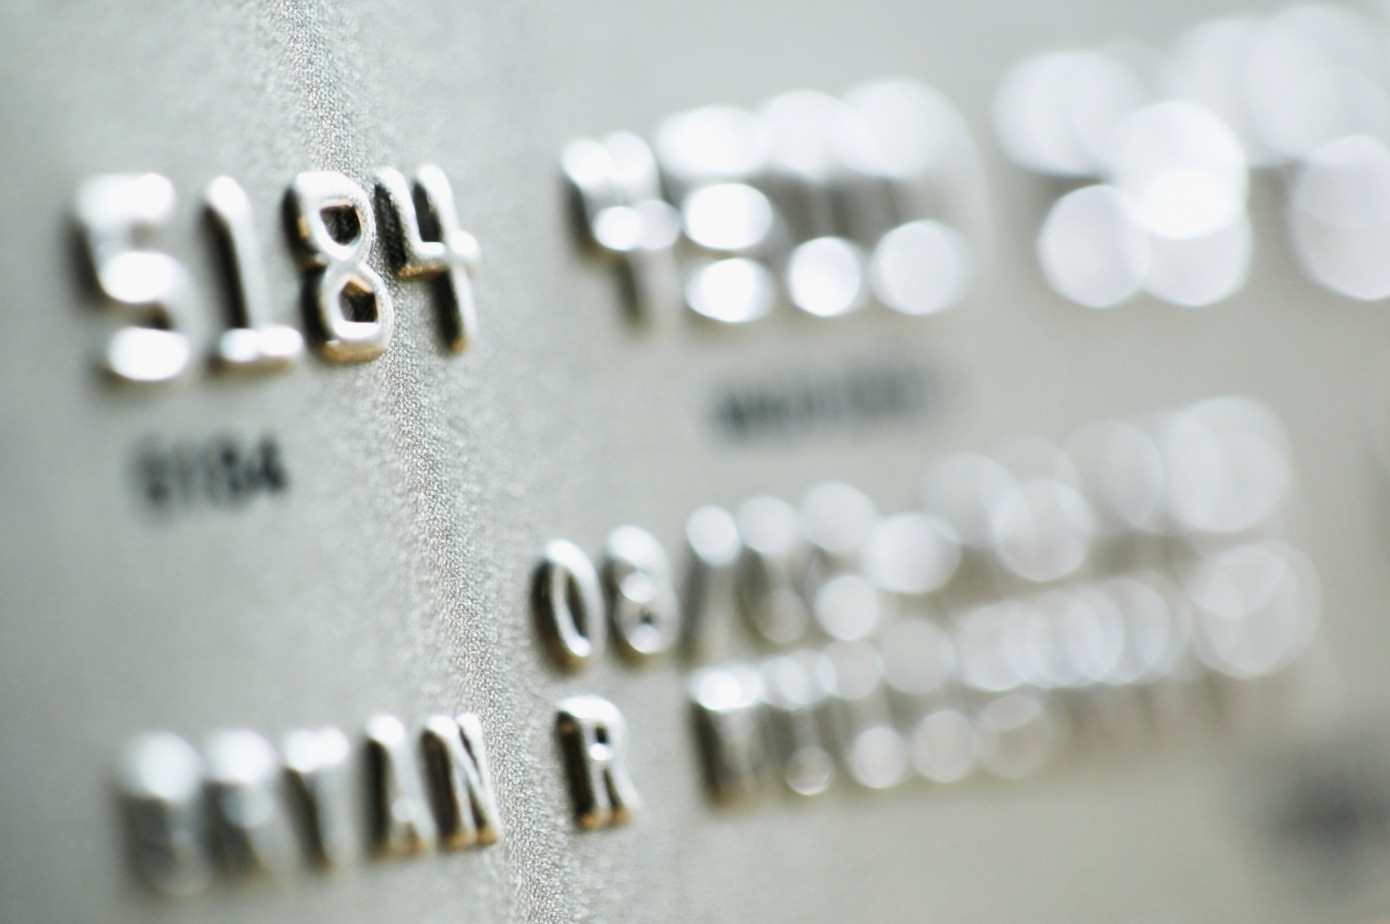 Ramp secures $150M debt line from Goldman Sachs as the corporate spend market grows